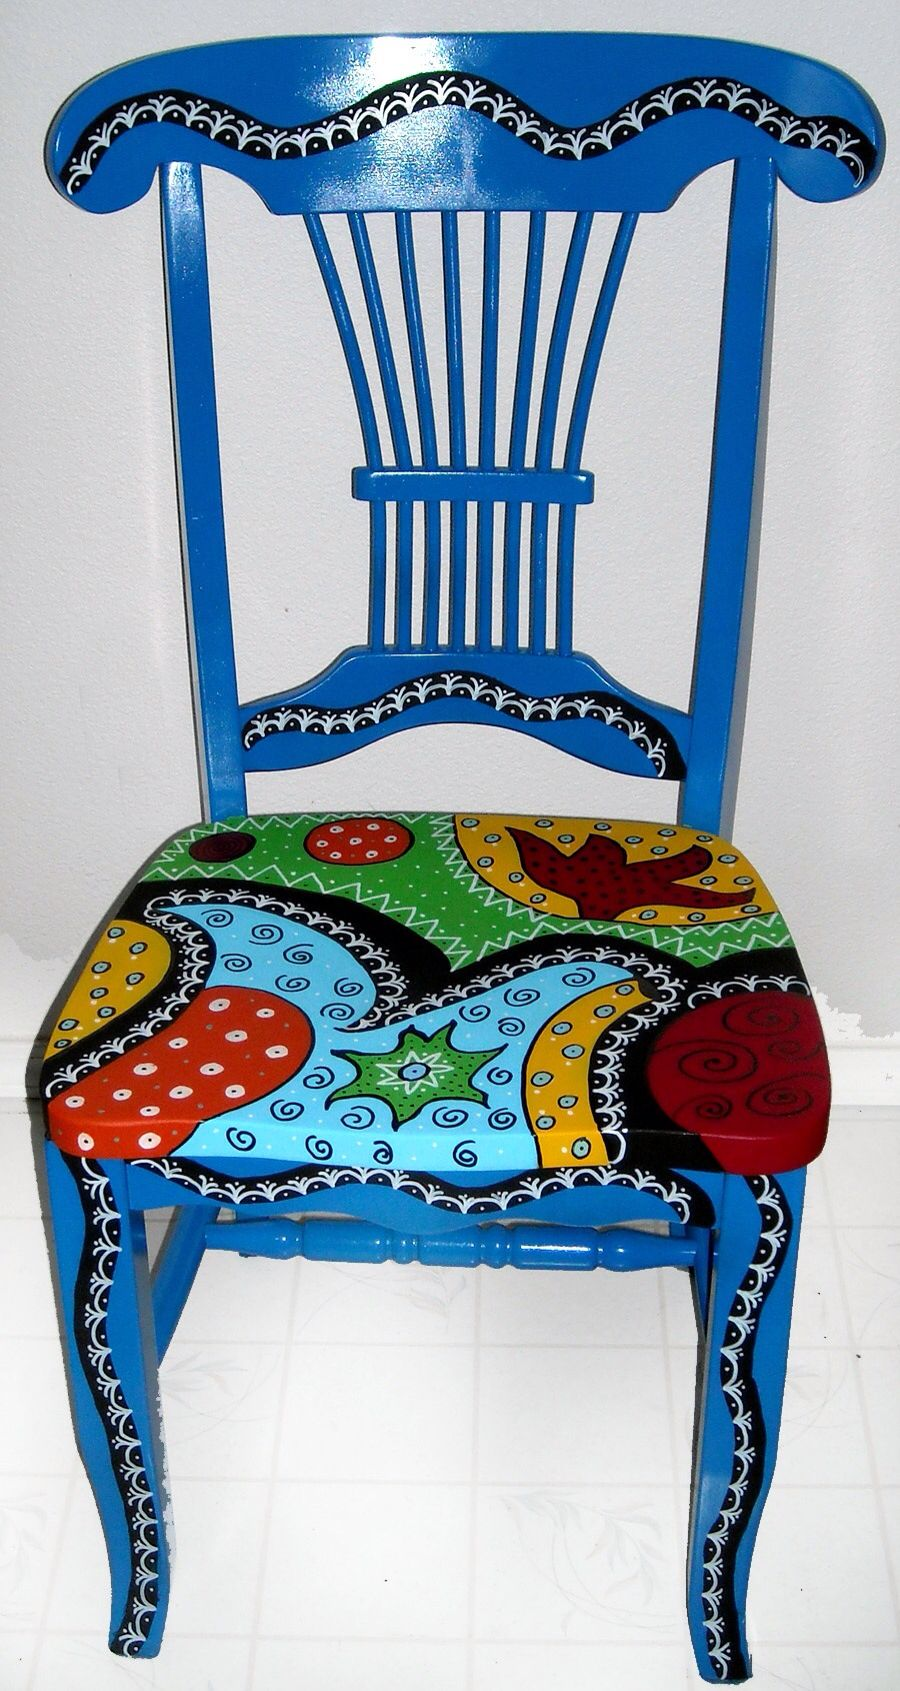 Painted chairs pinterest - Find This Pin And More On Chair Painting